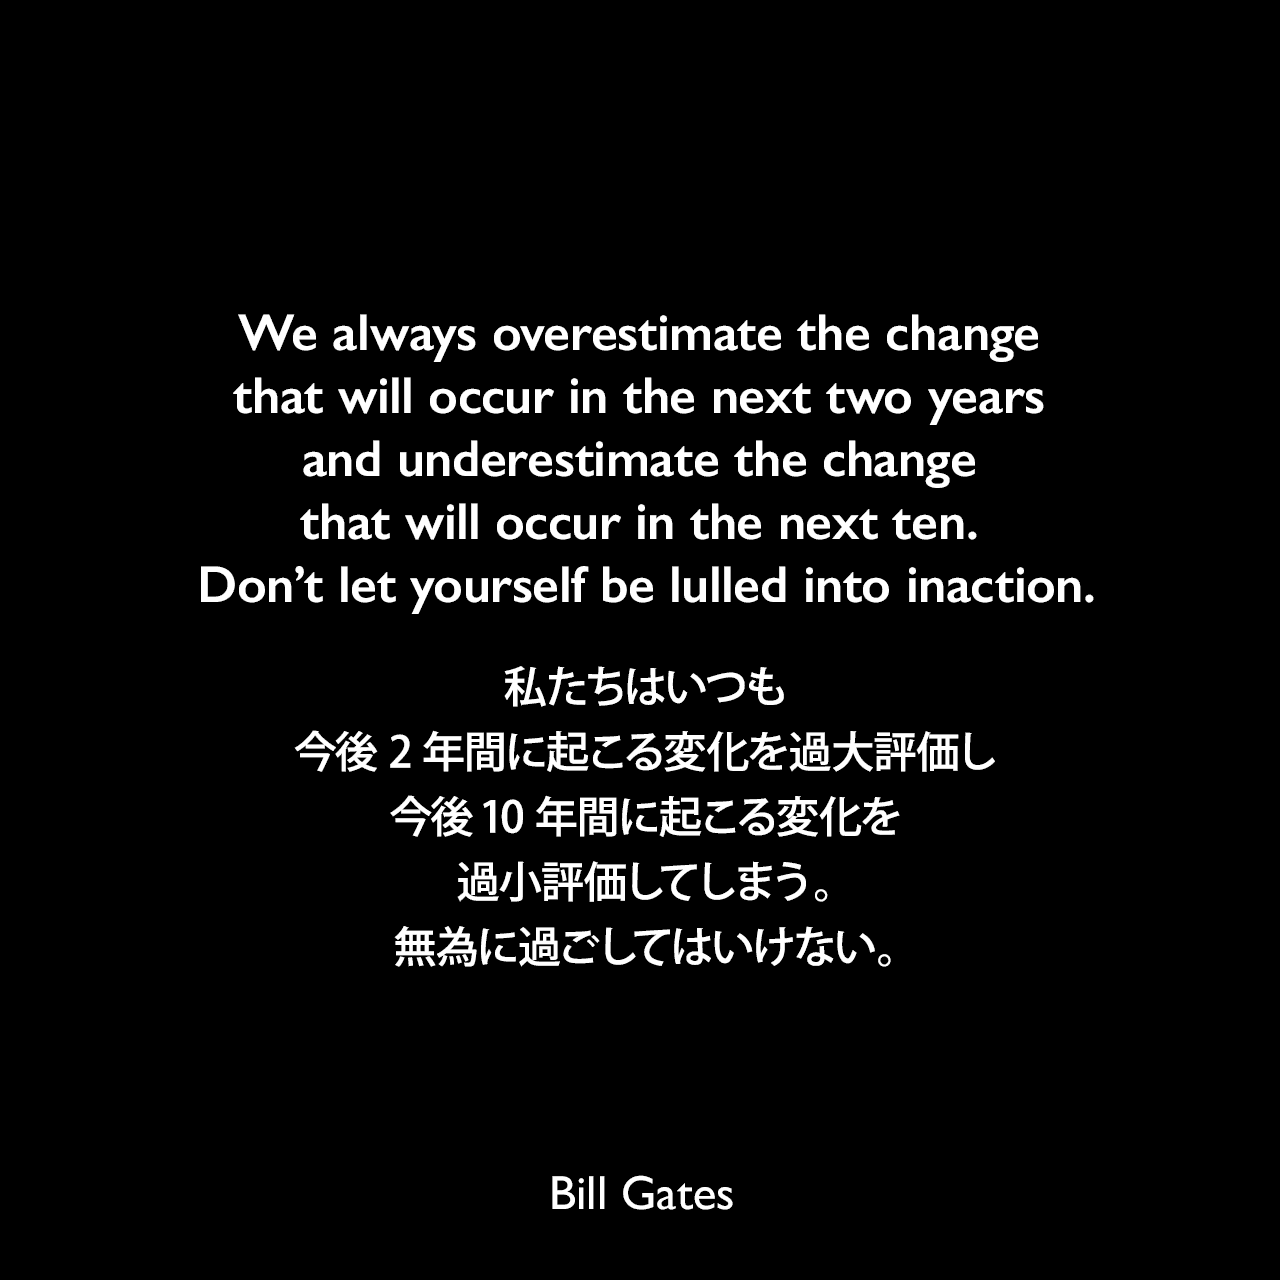 We always overestimate the change that will occur in the next two years and underestimate the change that will occur in the next ten. Don't let yourself be lulled into inaction.私たちはいつも、今後2年間に起こる変化を過大評価し、今後10年間に起こる変化を過小評価してしまう。無為に過ごしてはいけない。Bill Gates